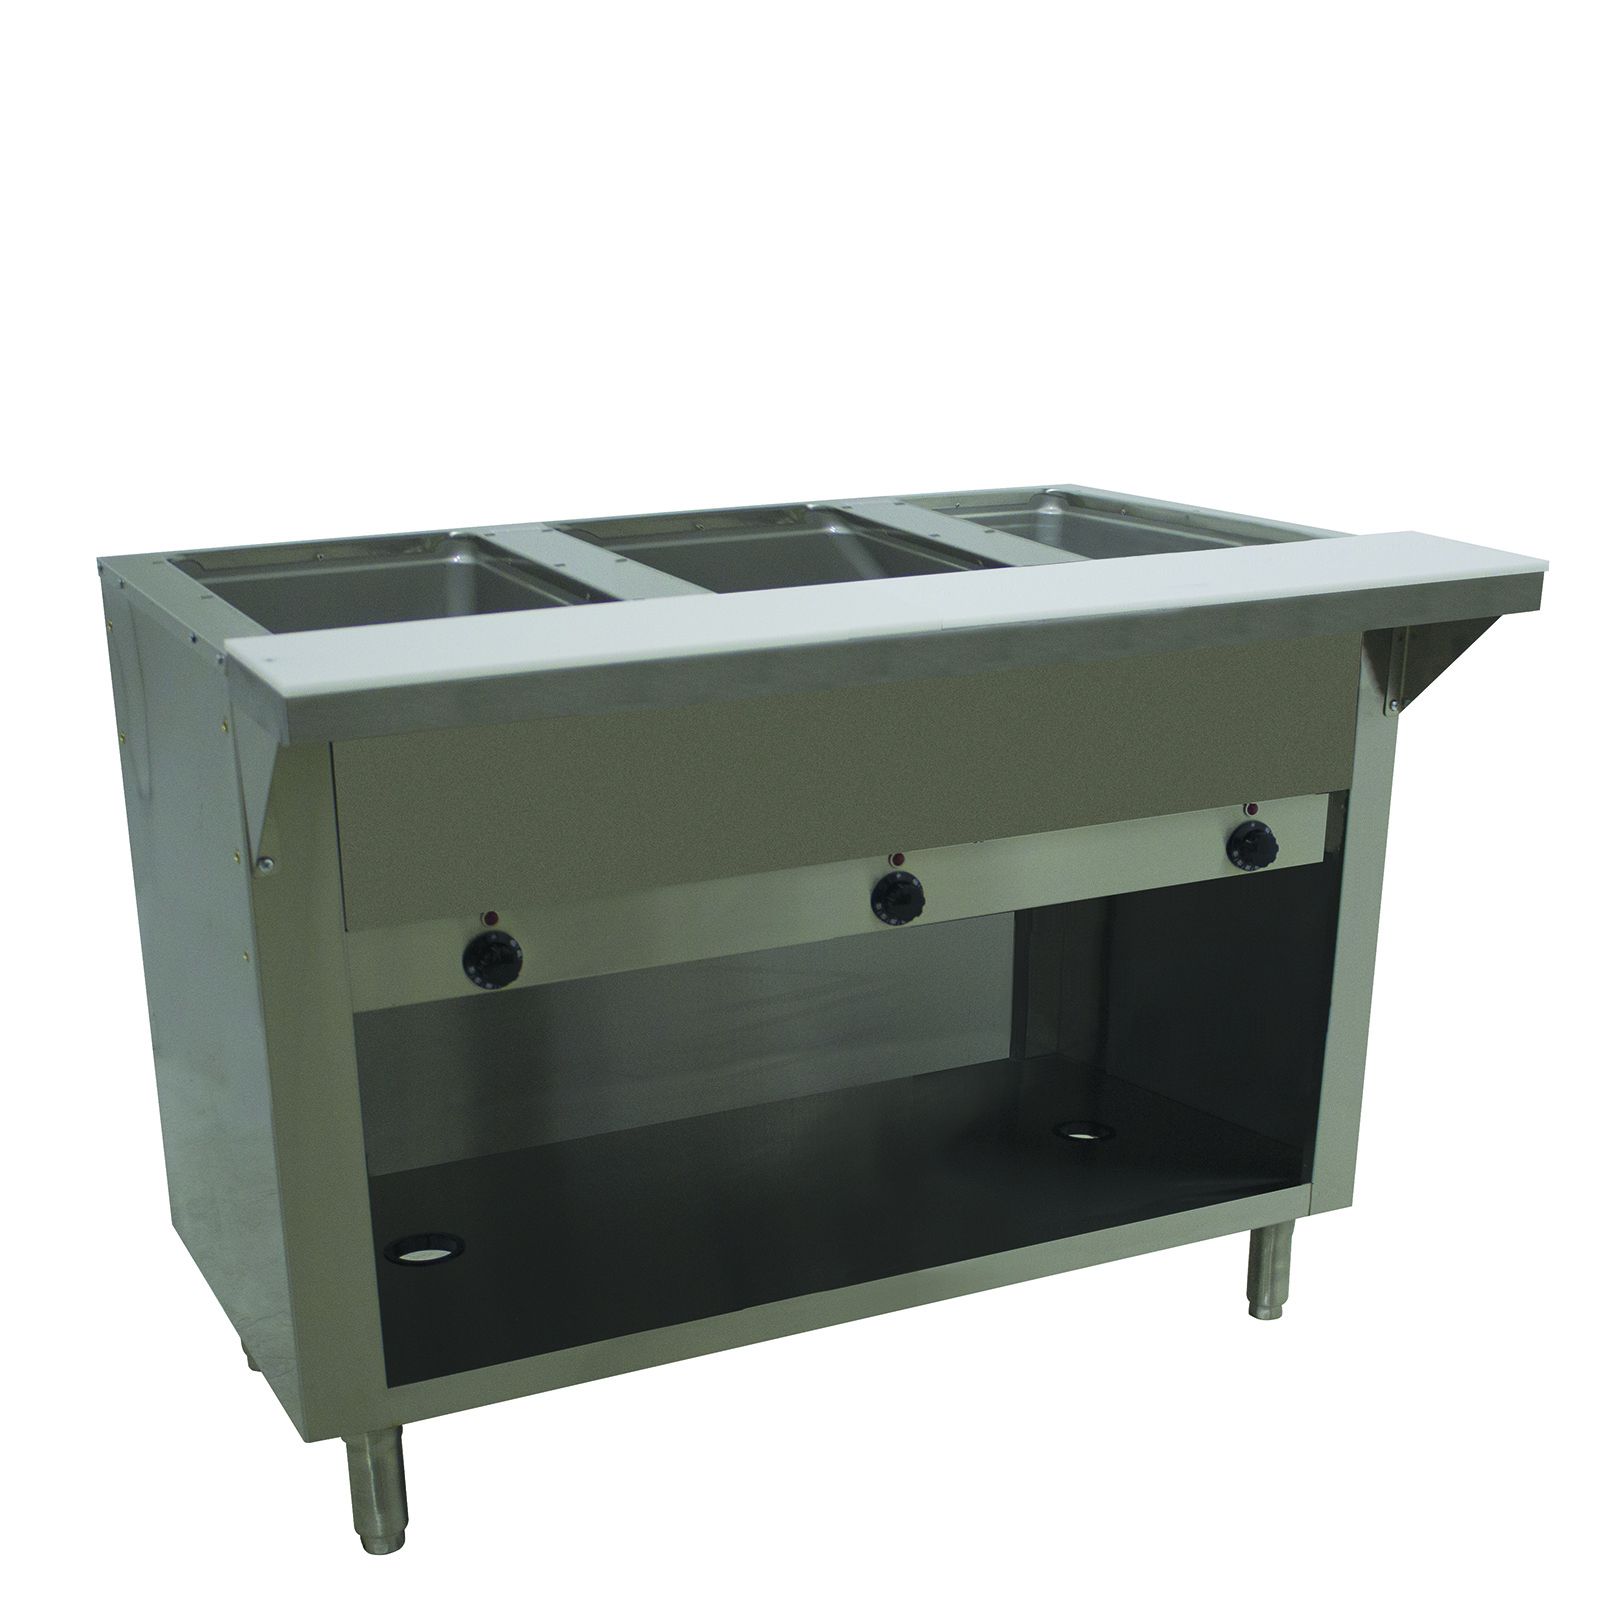 Advance Tabco HF-3E-120-BS serving counter, hot food, electric